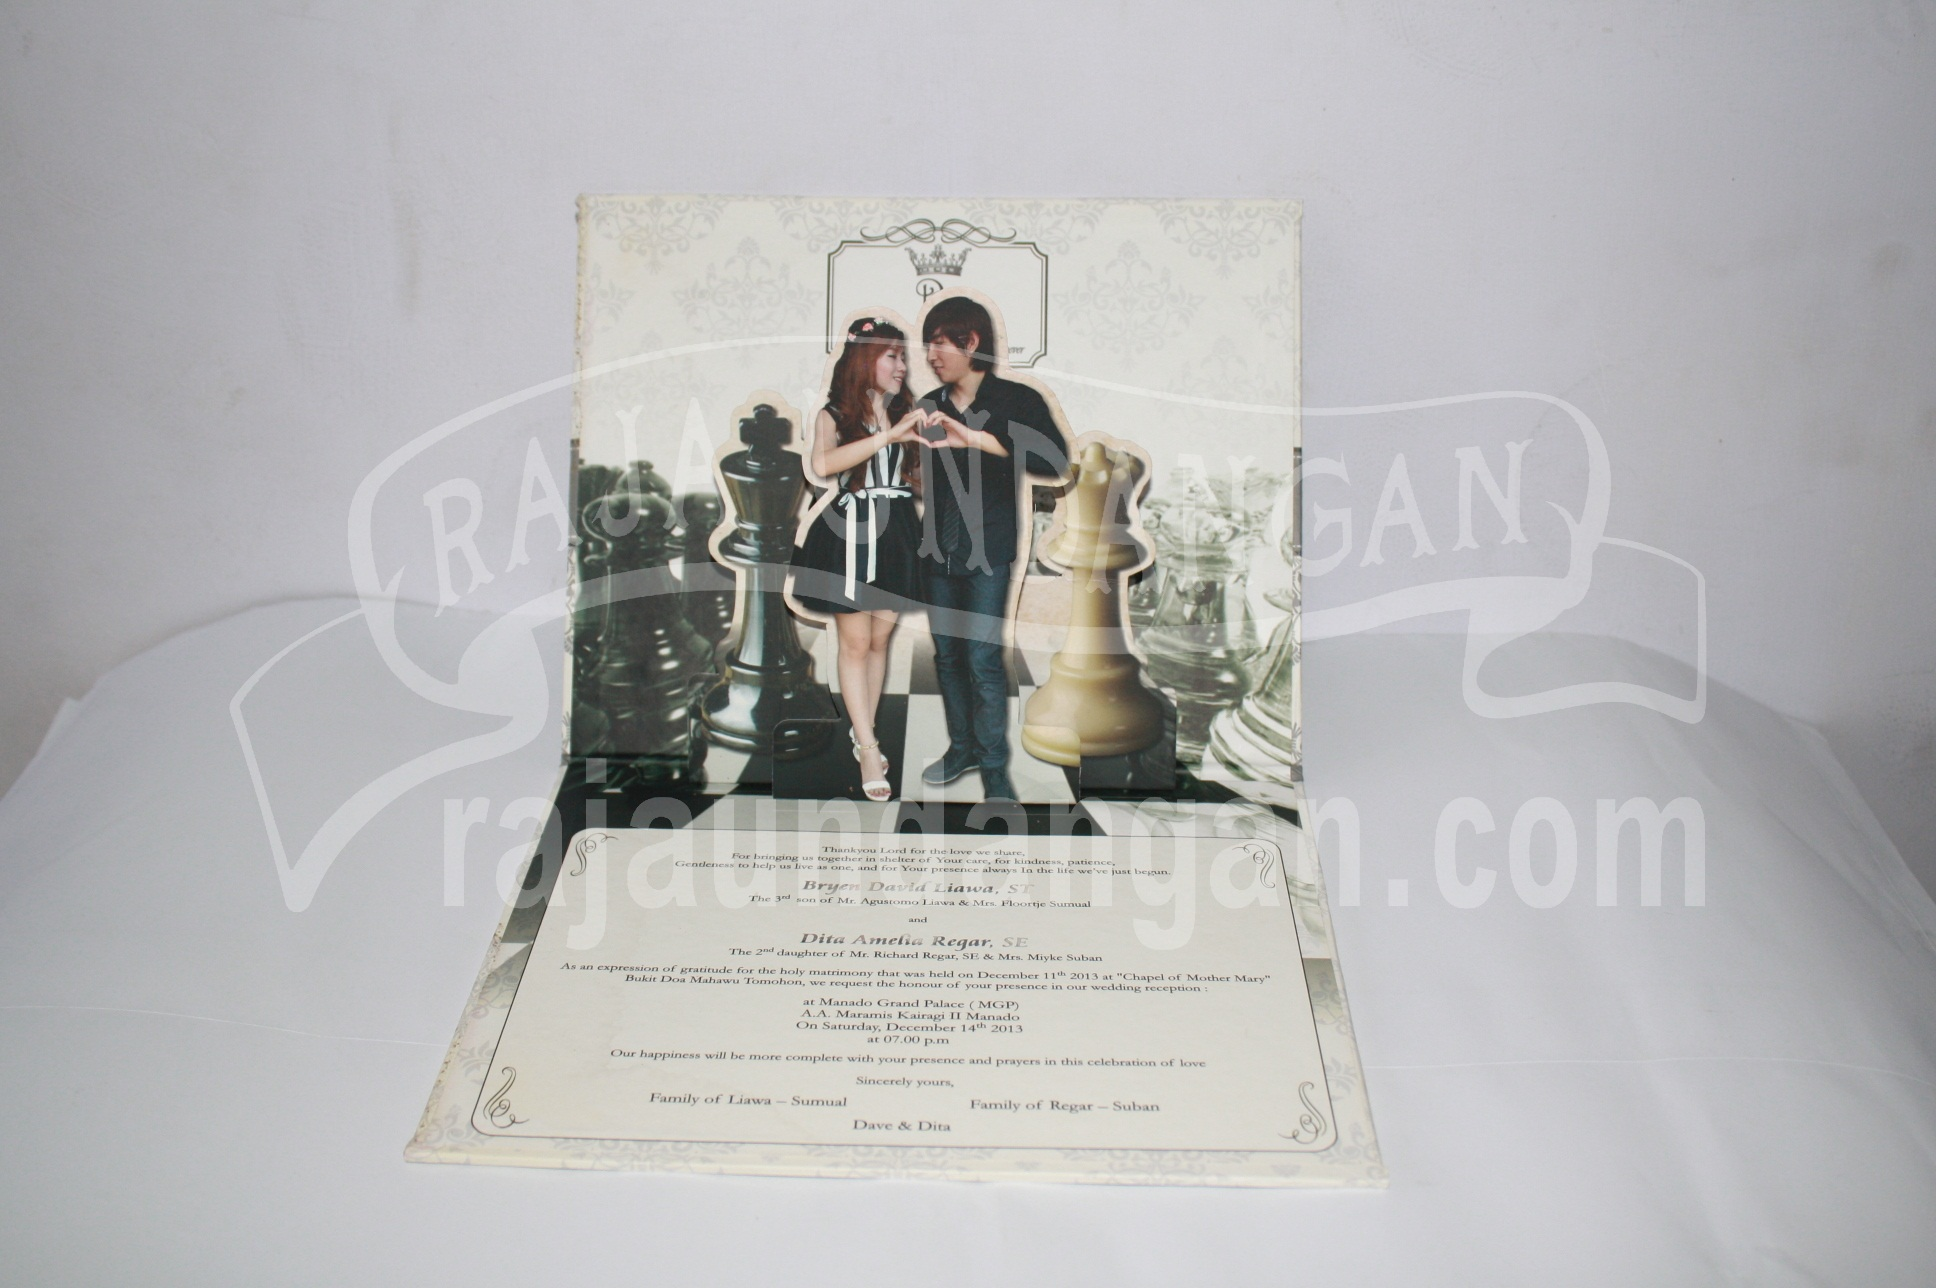 Undangan Pernikahan Hardcover Pop Up Dave dan Dita EDC 39 1 - Pesan Wedding Invitations Eksklusif di Tambak Osowilangun